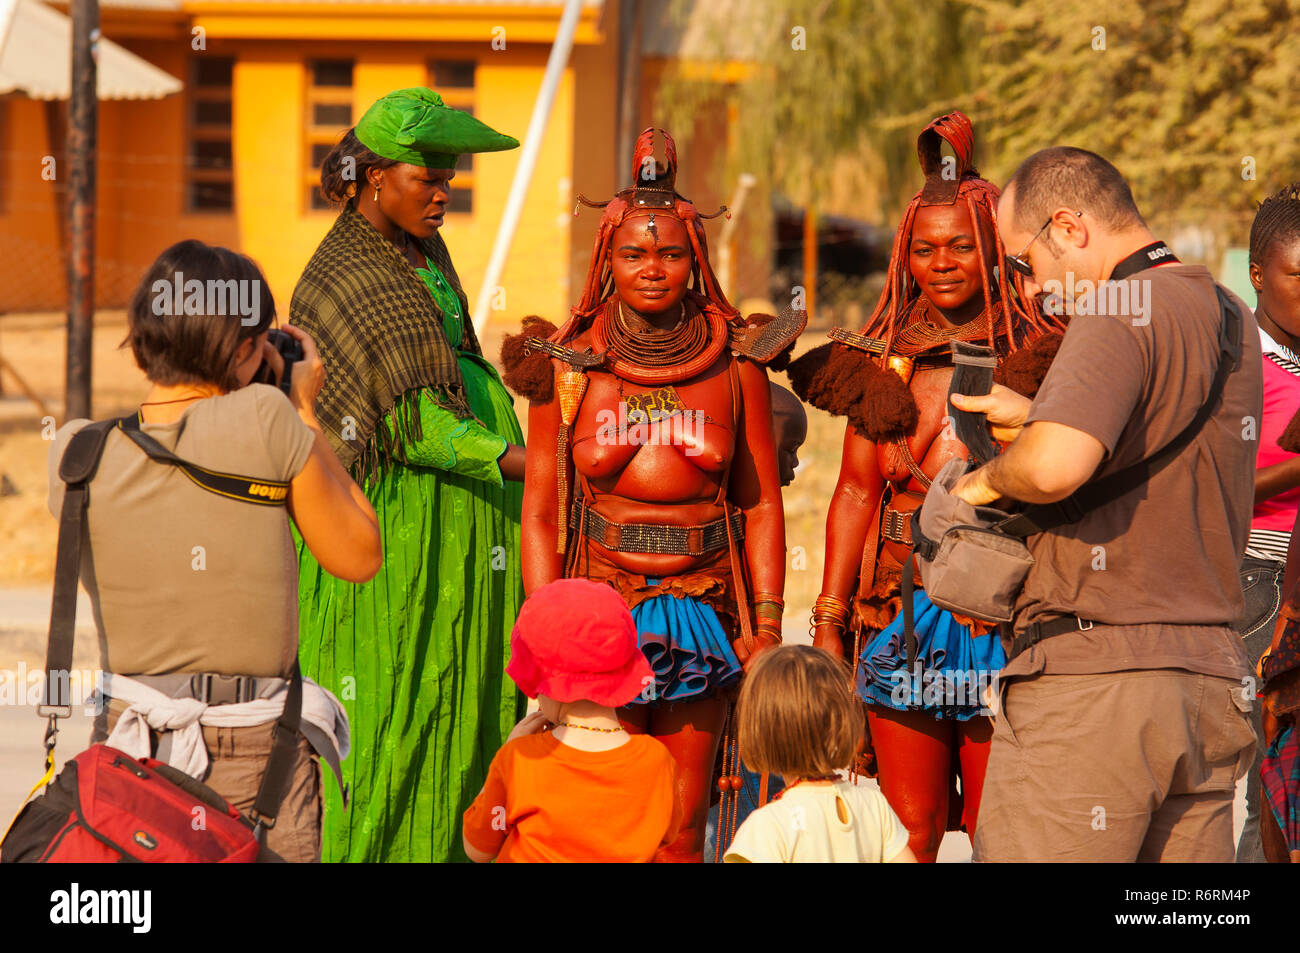 Tourists taking pictures of  two Himba womans on the streets of Opuwo town, northern Namibia - Stock Image